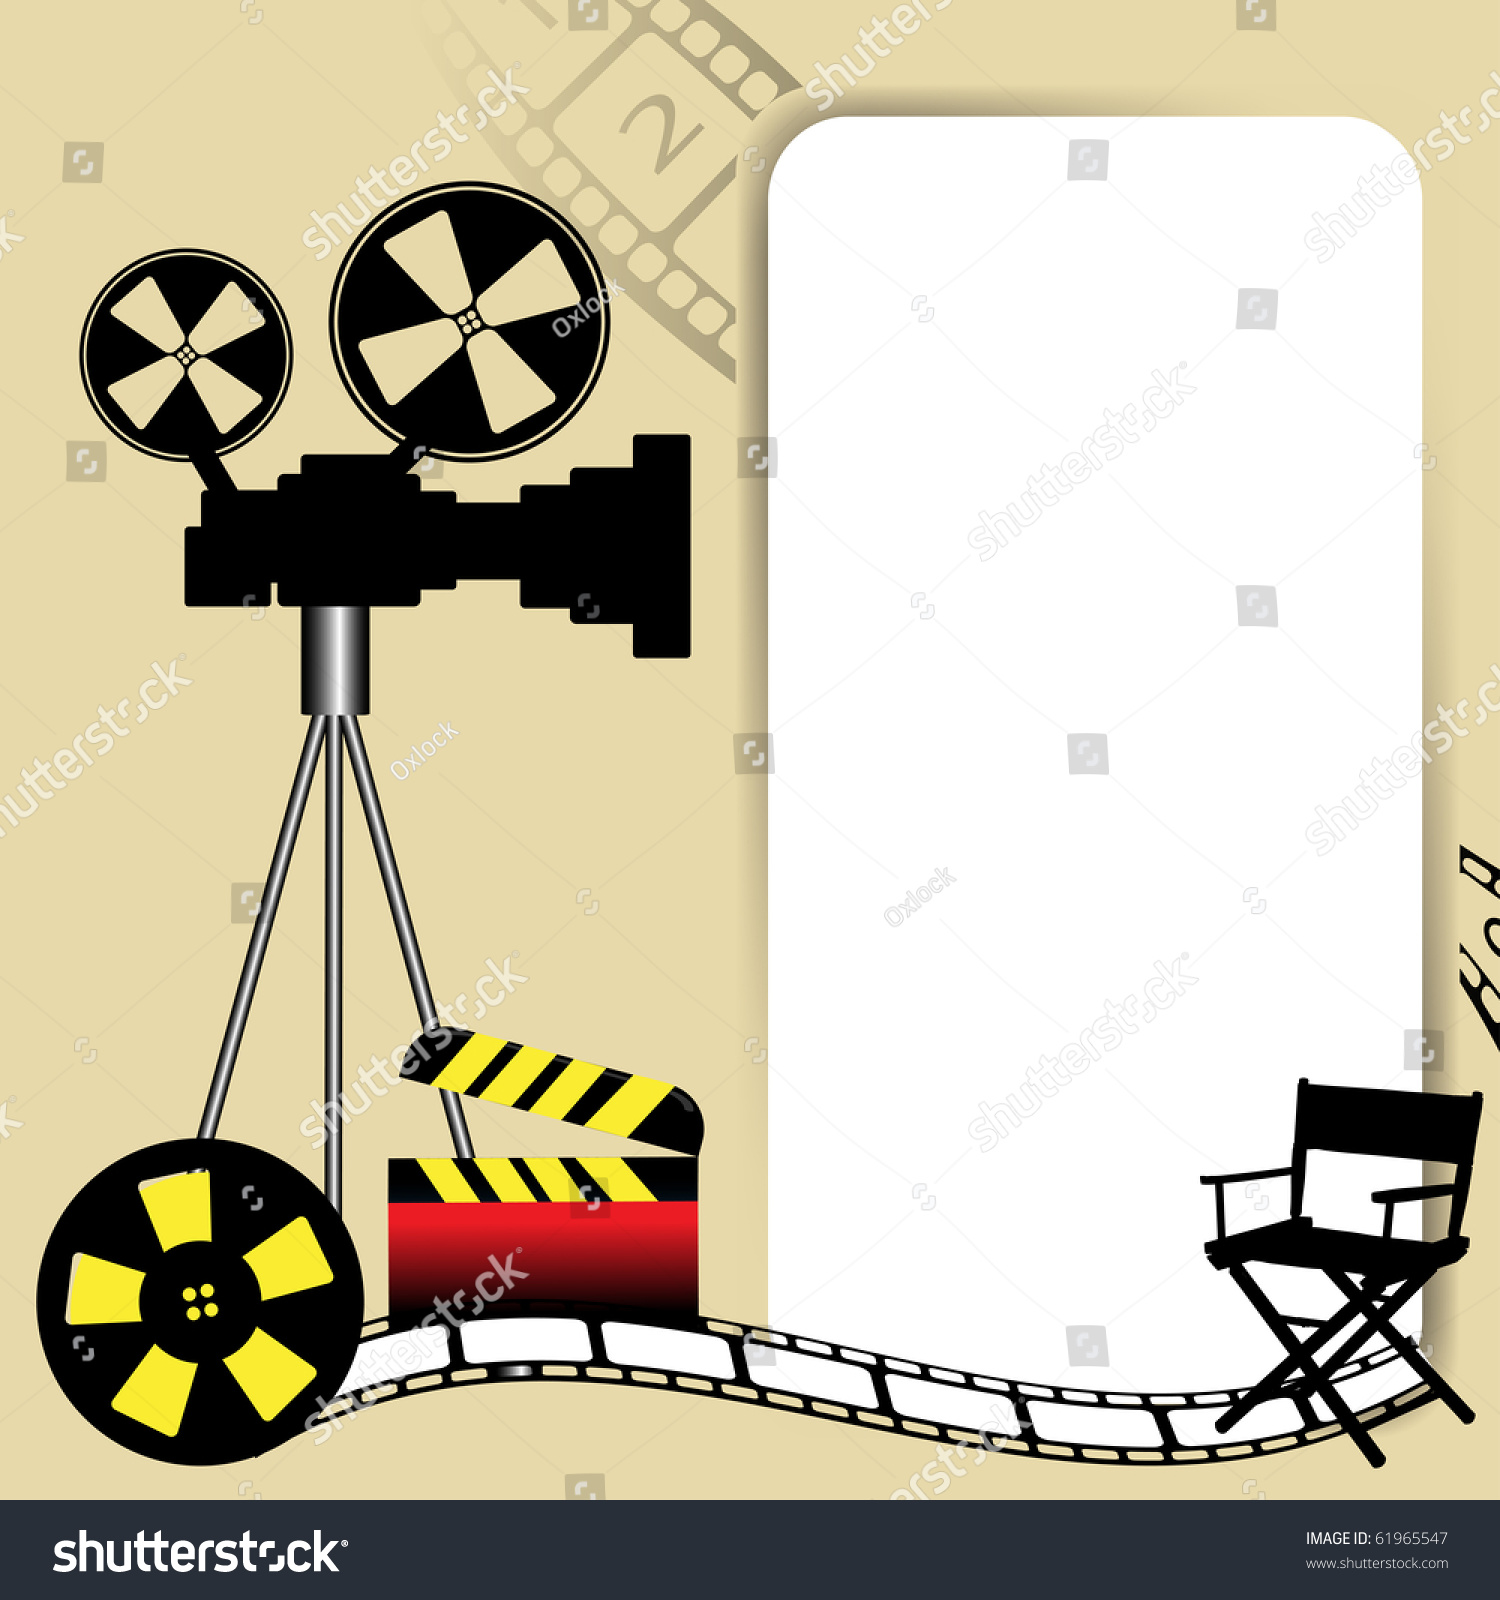 movie reel wallpaper border - photo #49